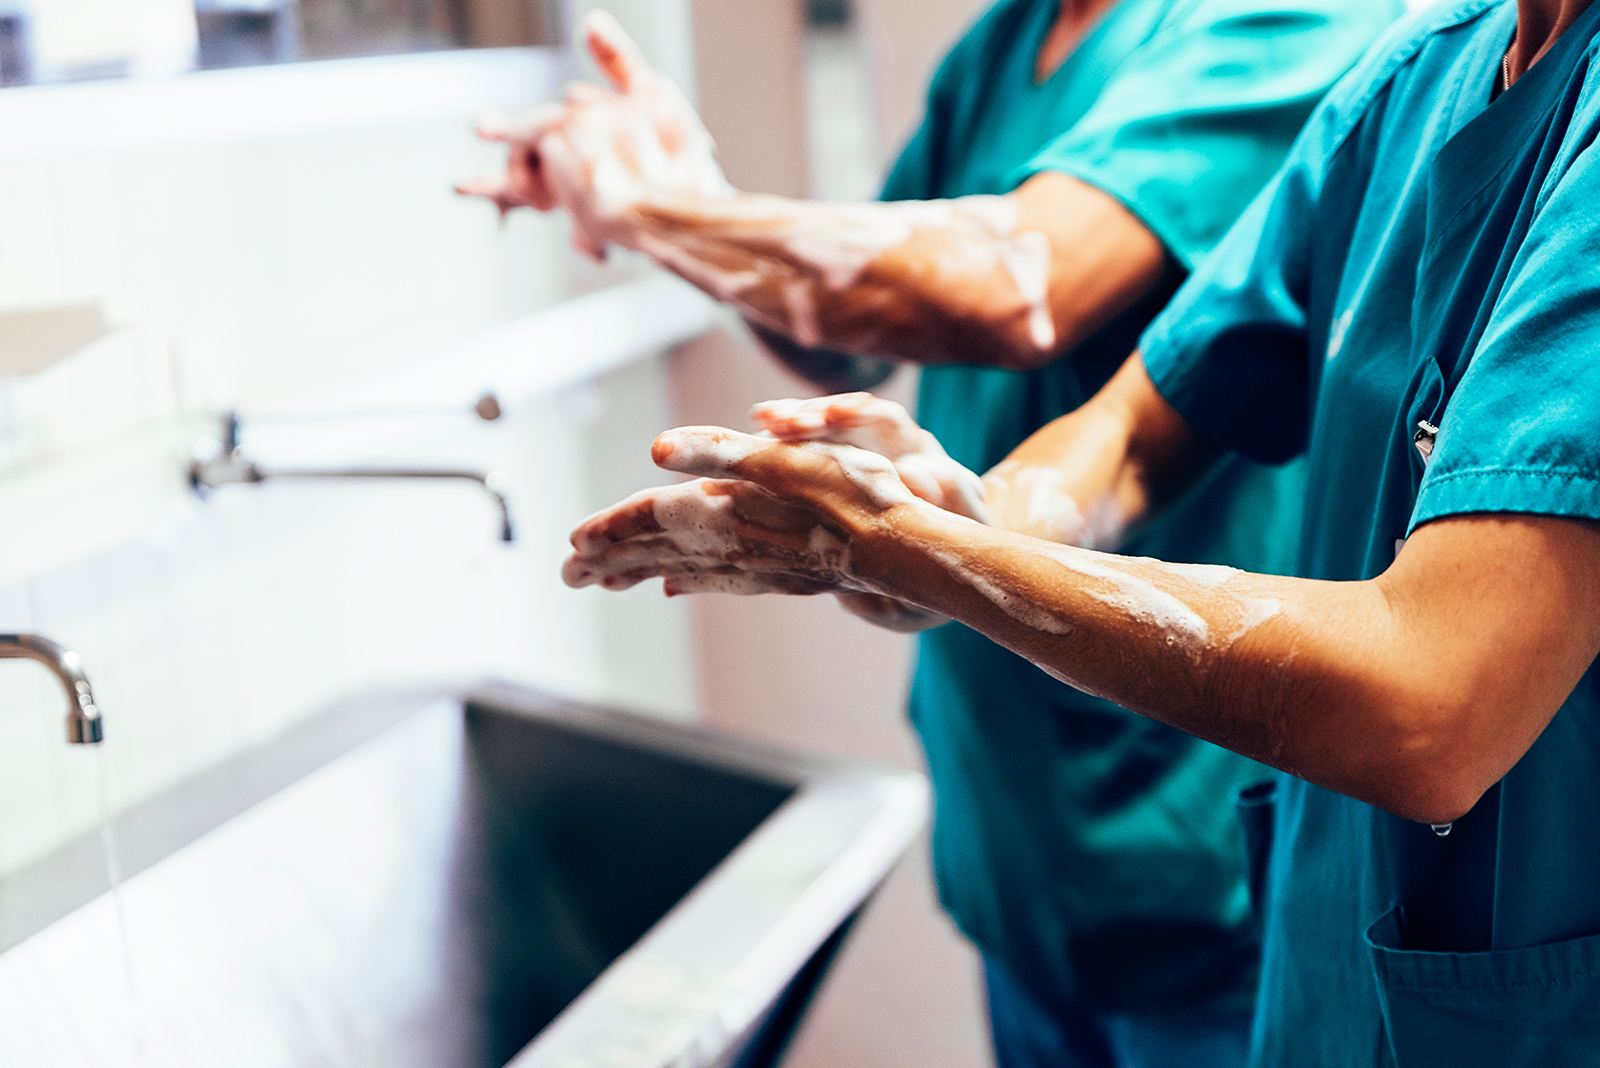 Surgeons Washing Hands Before Operating iStock 687758768